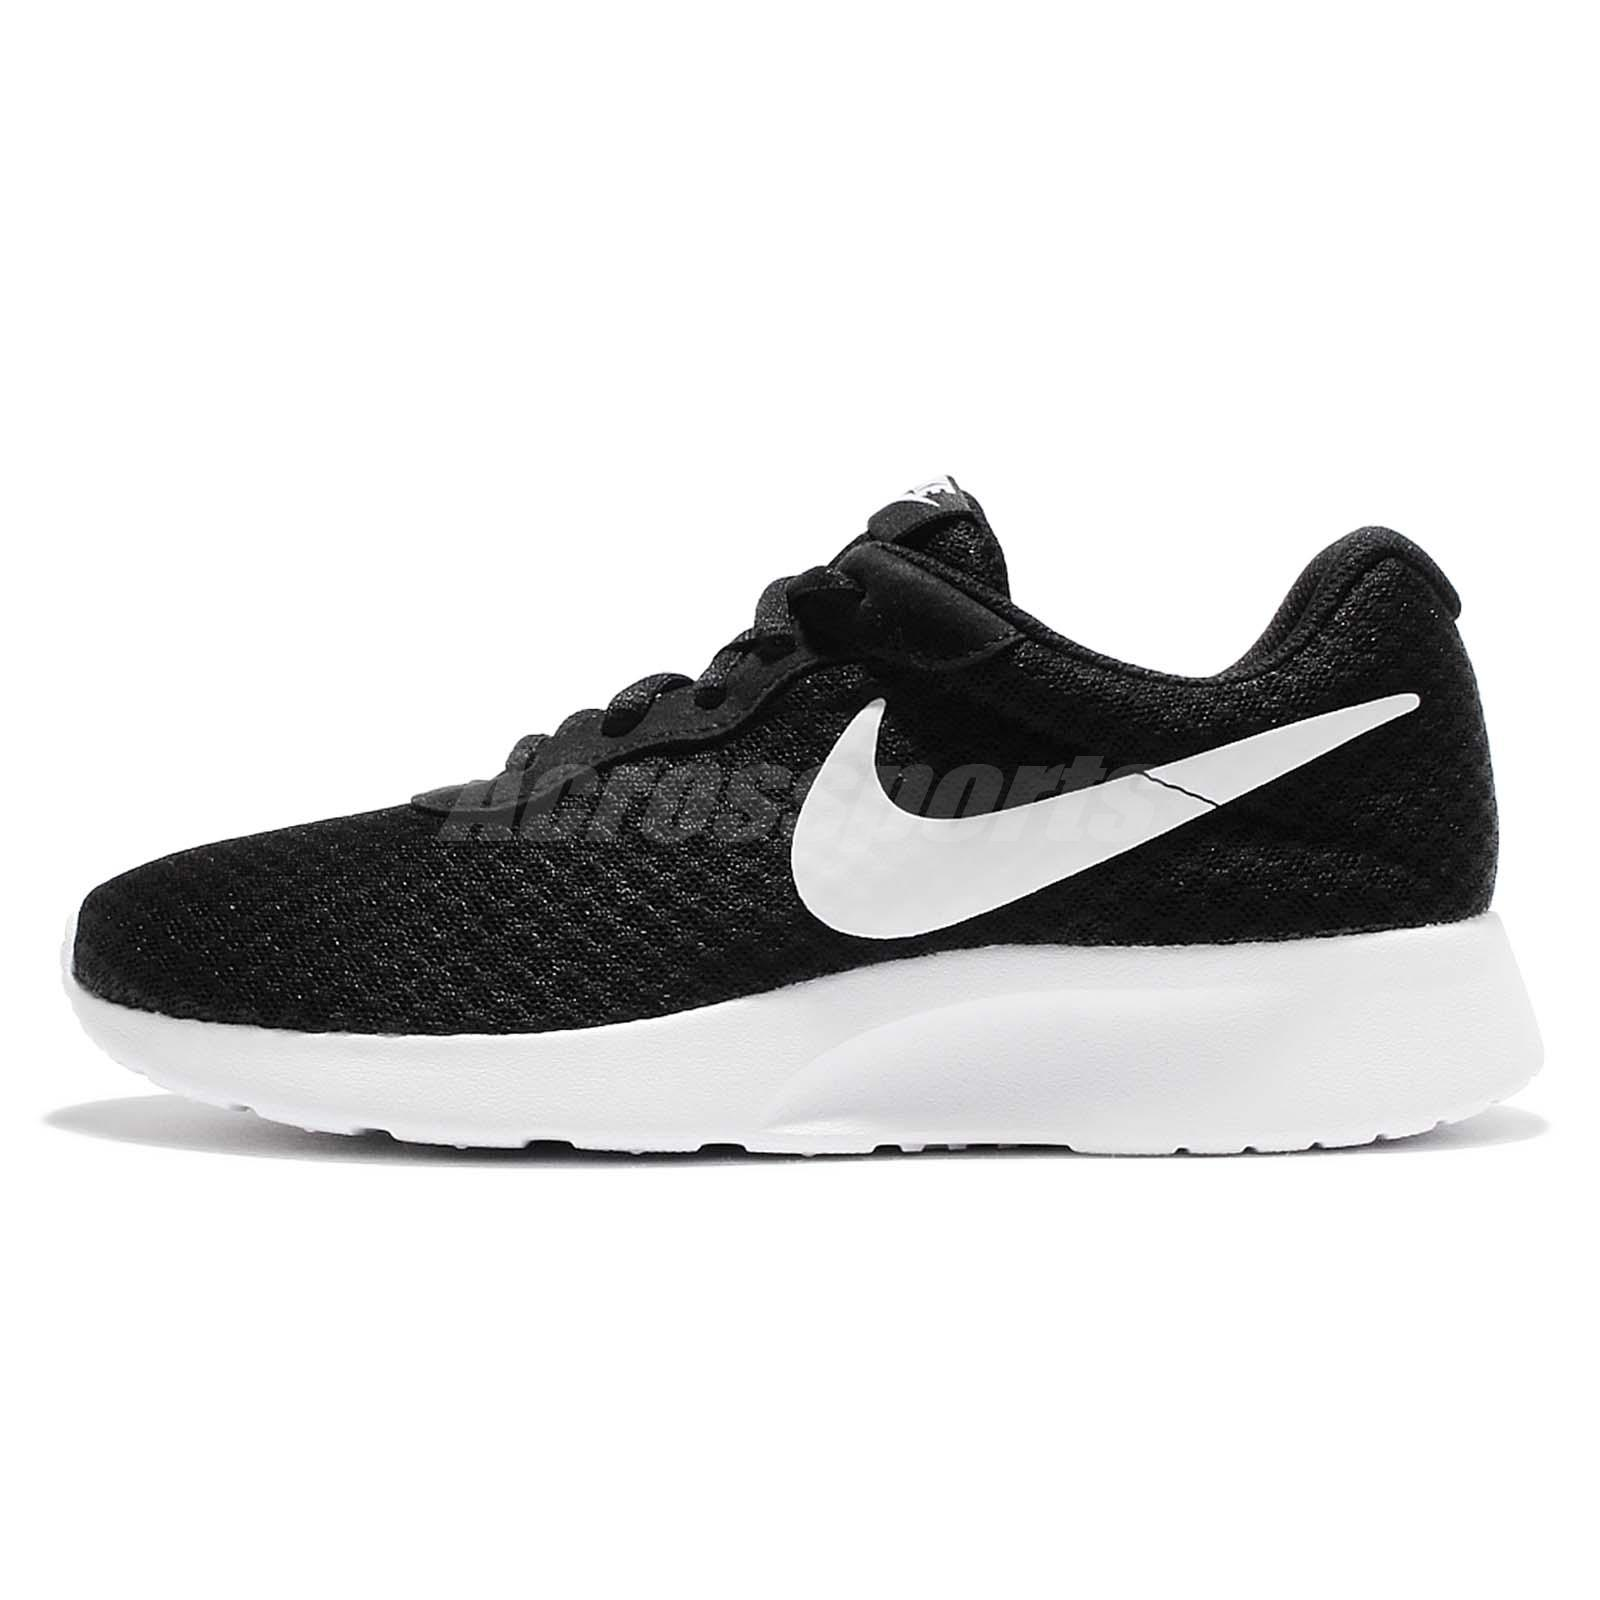 Wmns Nike Tanjun Black White NSW Sportswear Womens Running Shoes 812655-011